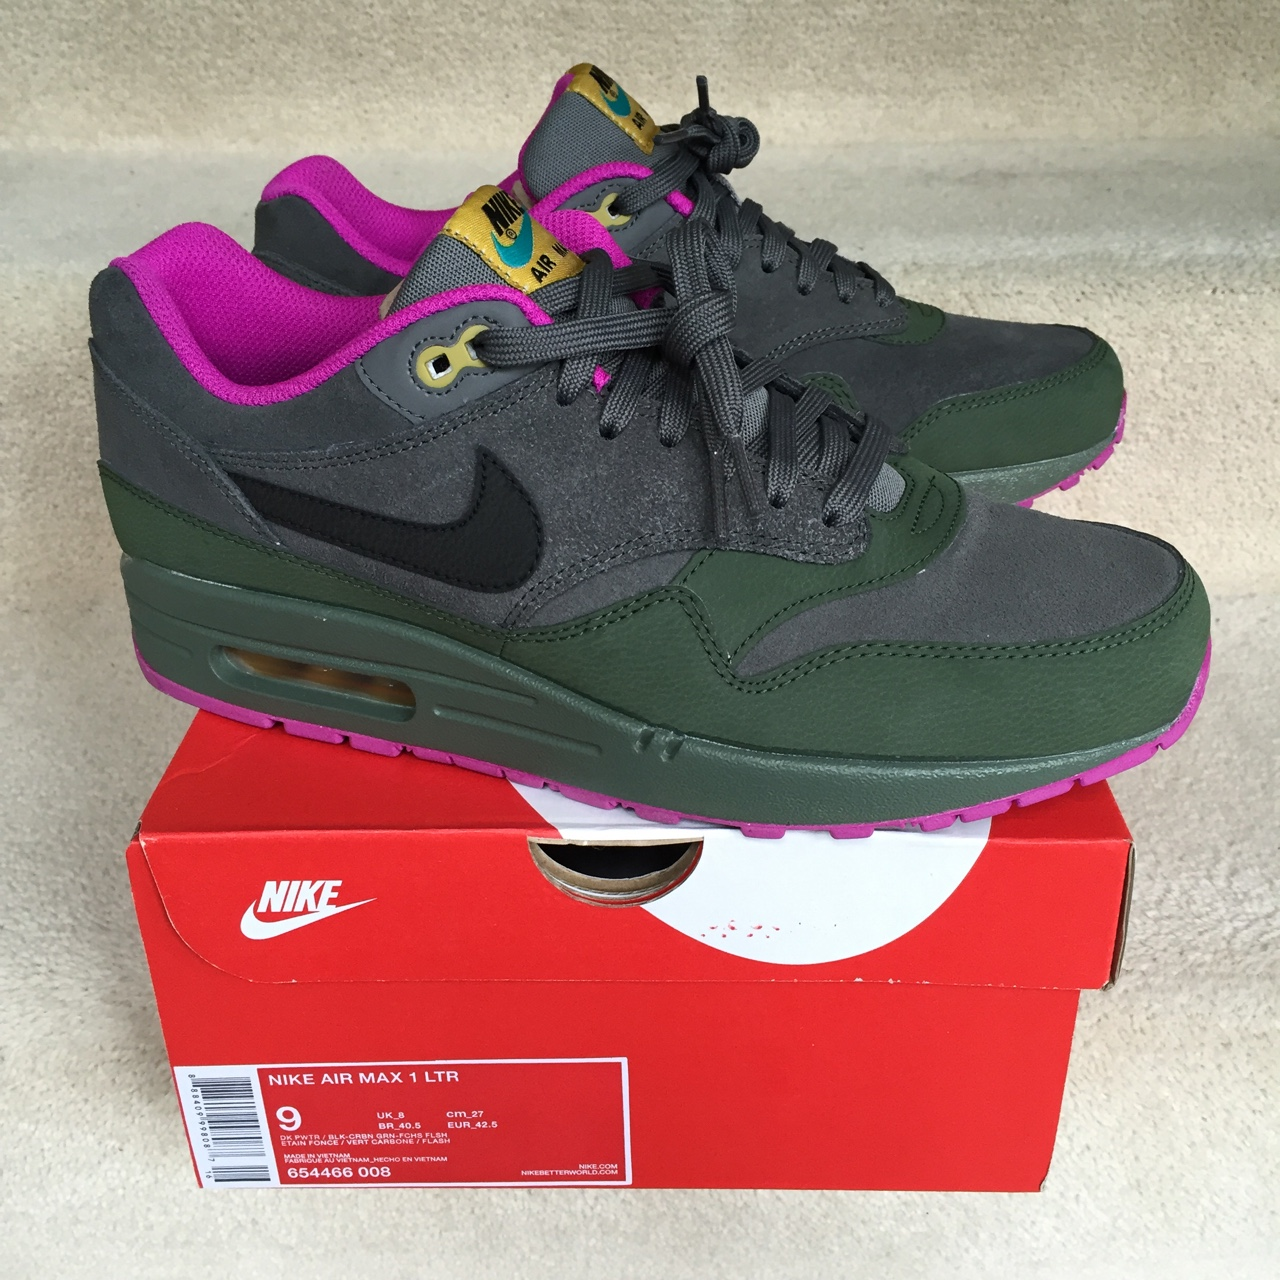 quality design b1a58 55dd7  solefooduk. 4 years ago. London, UK. Nike Air Max 1 LTR ...